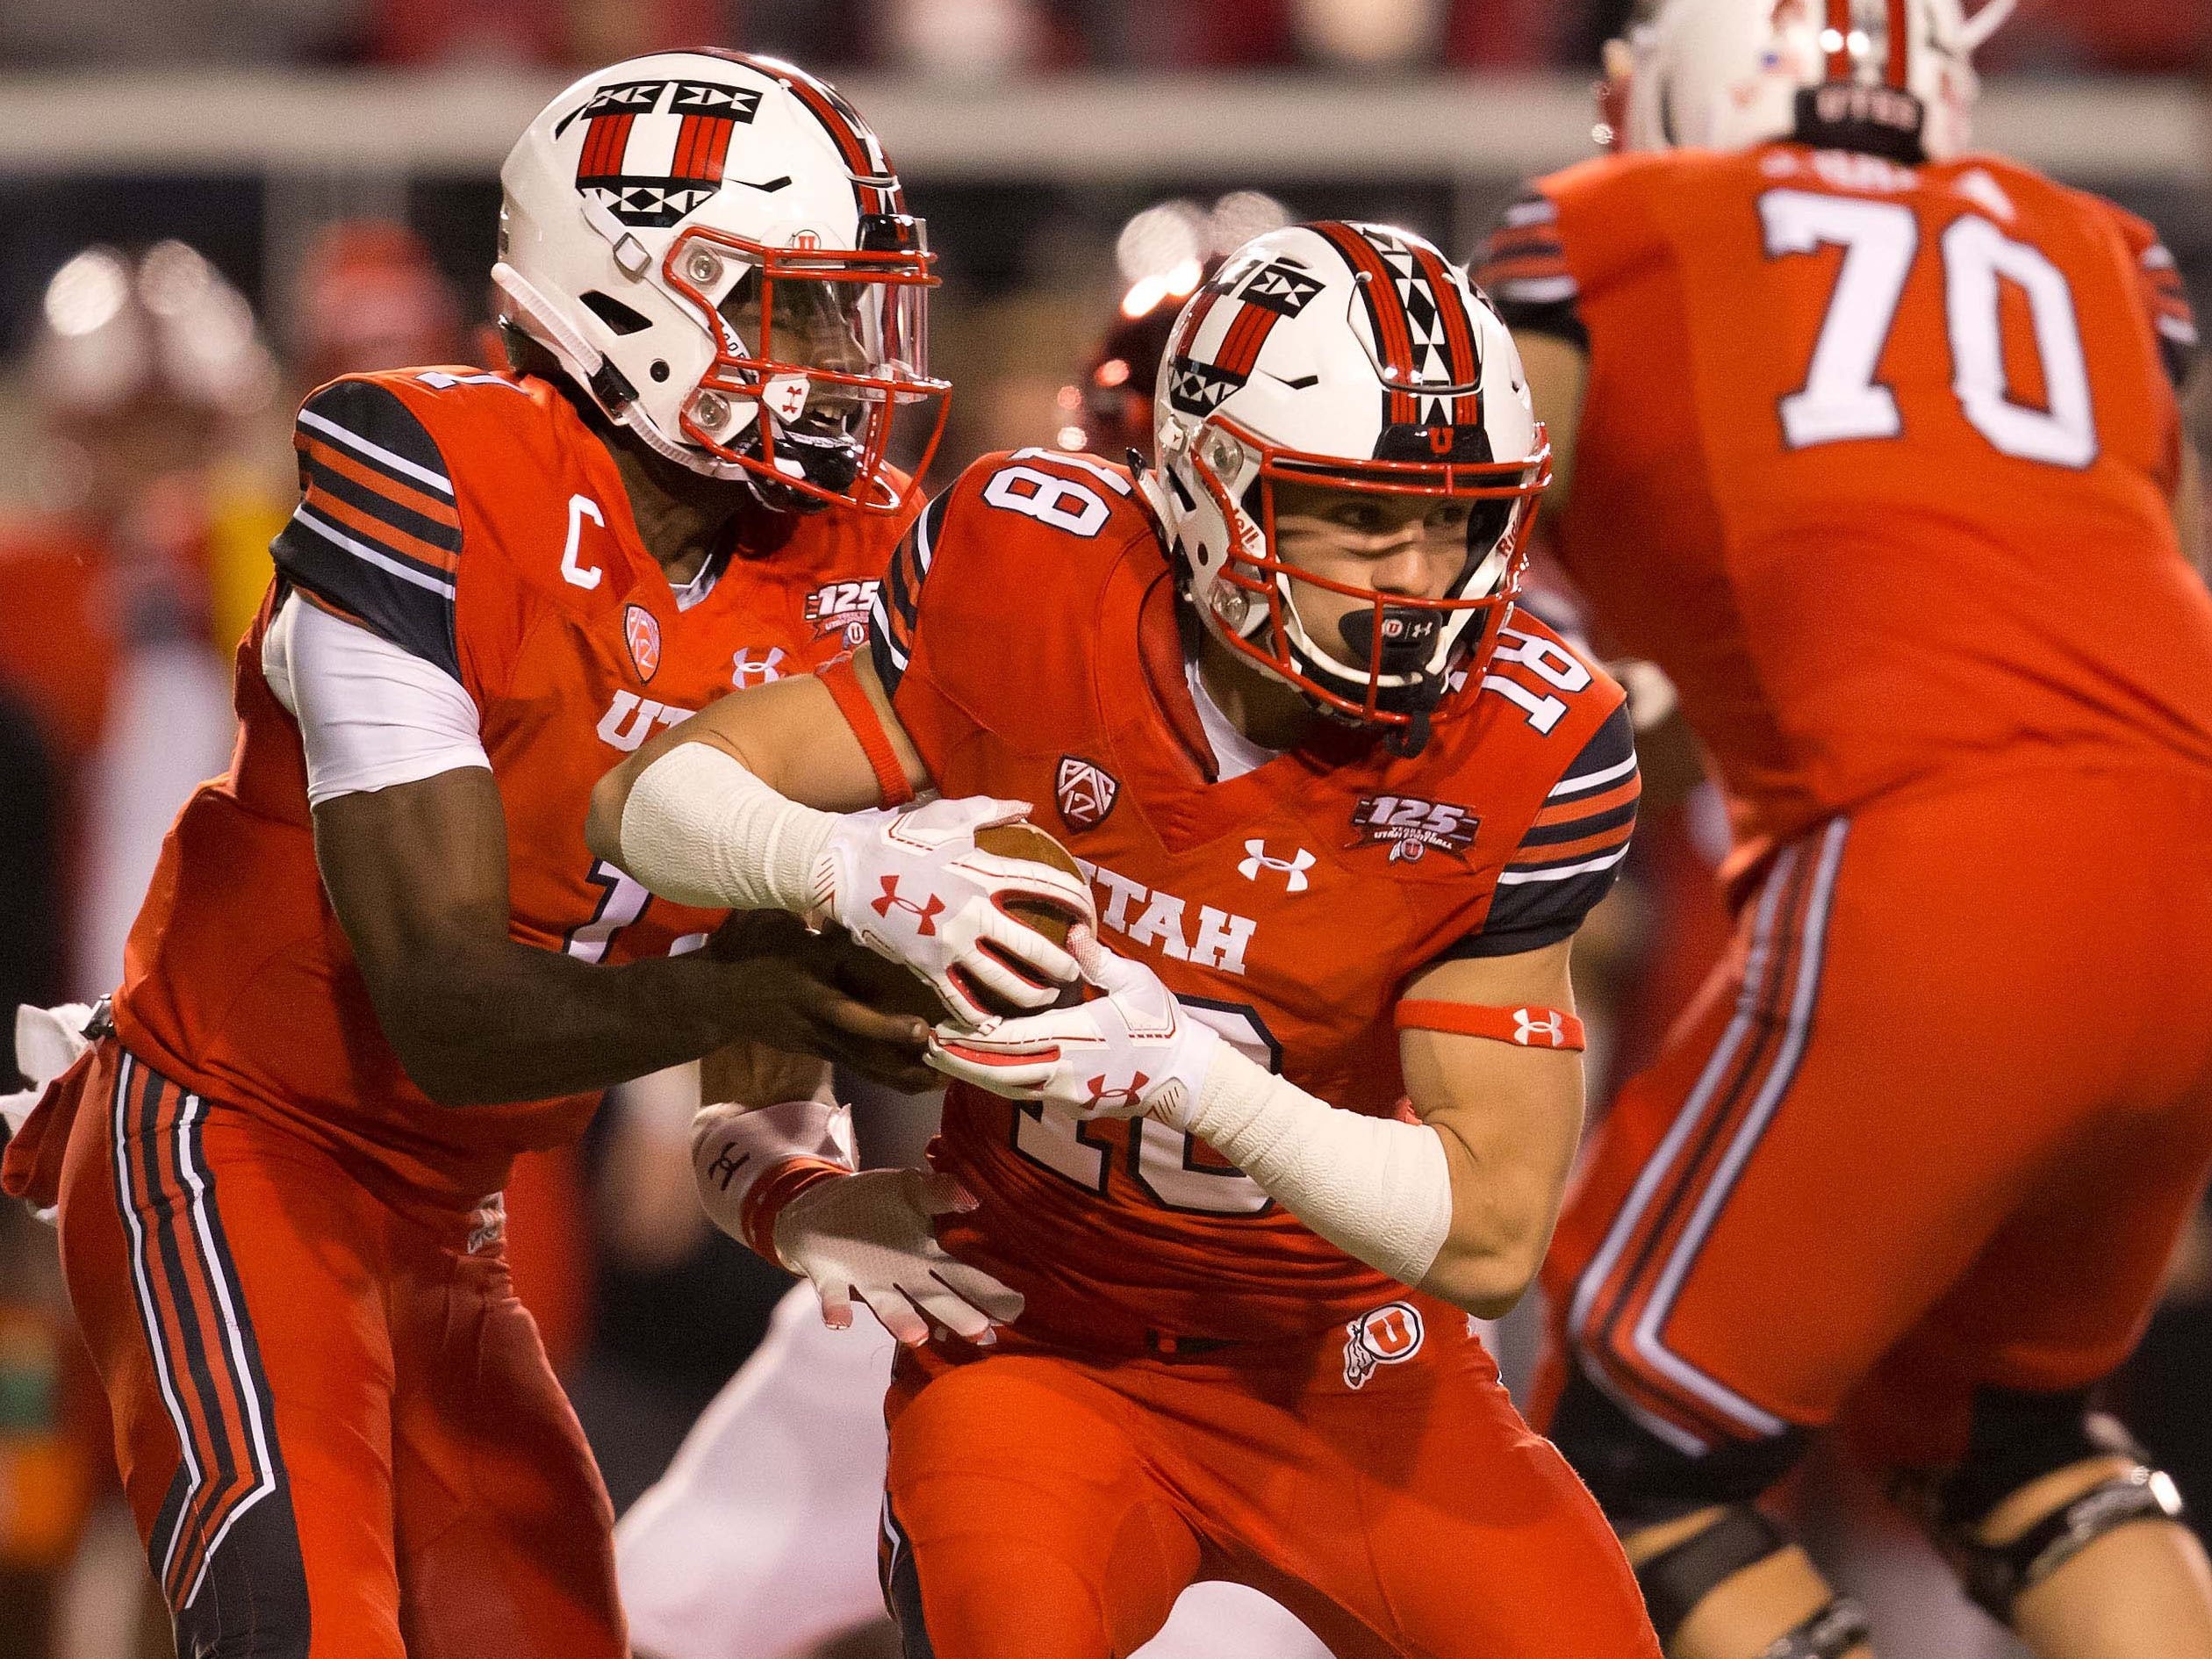 Oct 12, 2018; Salt Lake City, UT, USA; Utah Utes quarterback Tyler Huntley (1) hands off to wide receiver Britain Covey (18) during the first quarter against the Arizona Wildcats at Rice-Eccles Stadium.